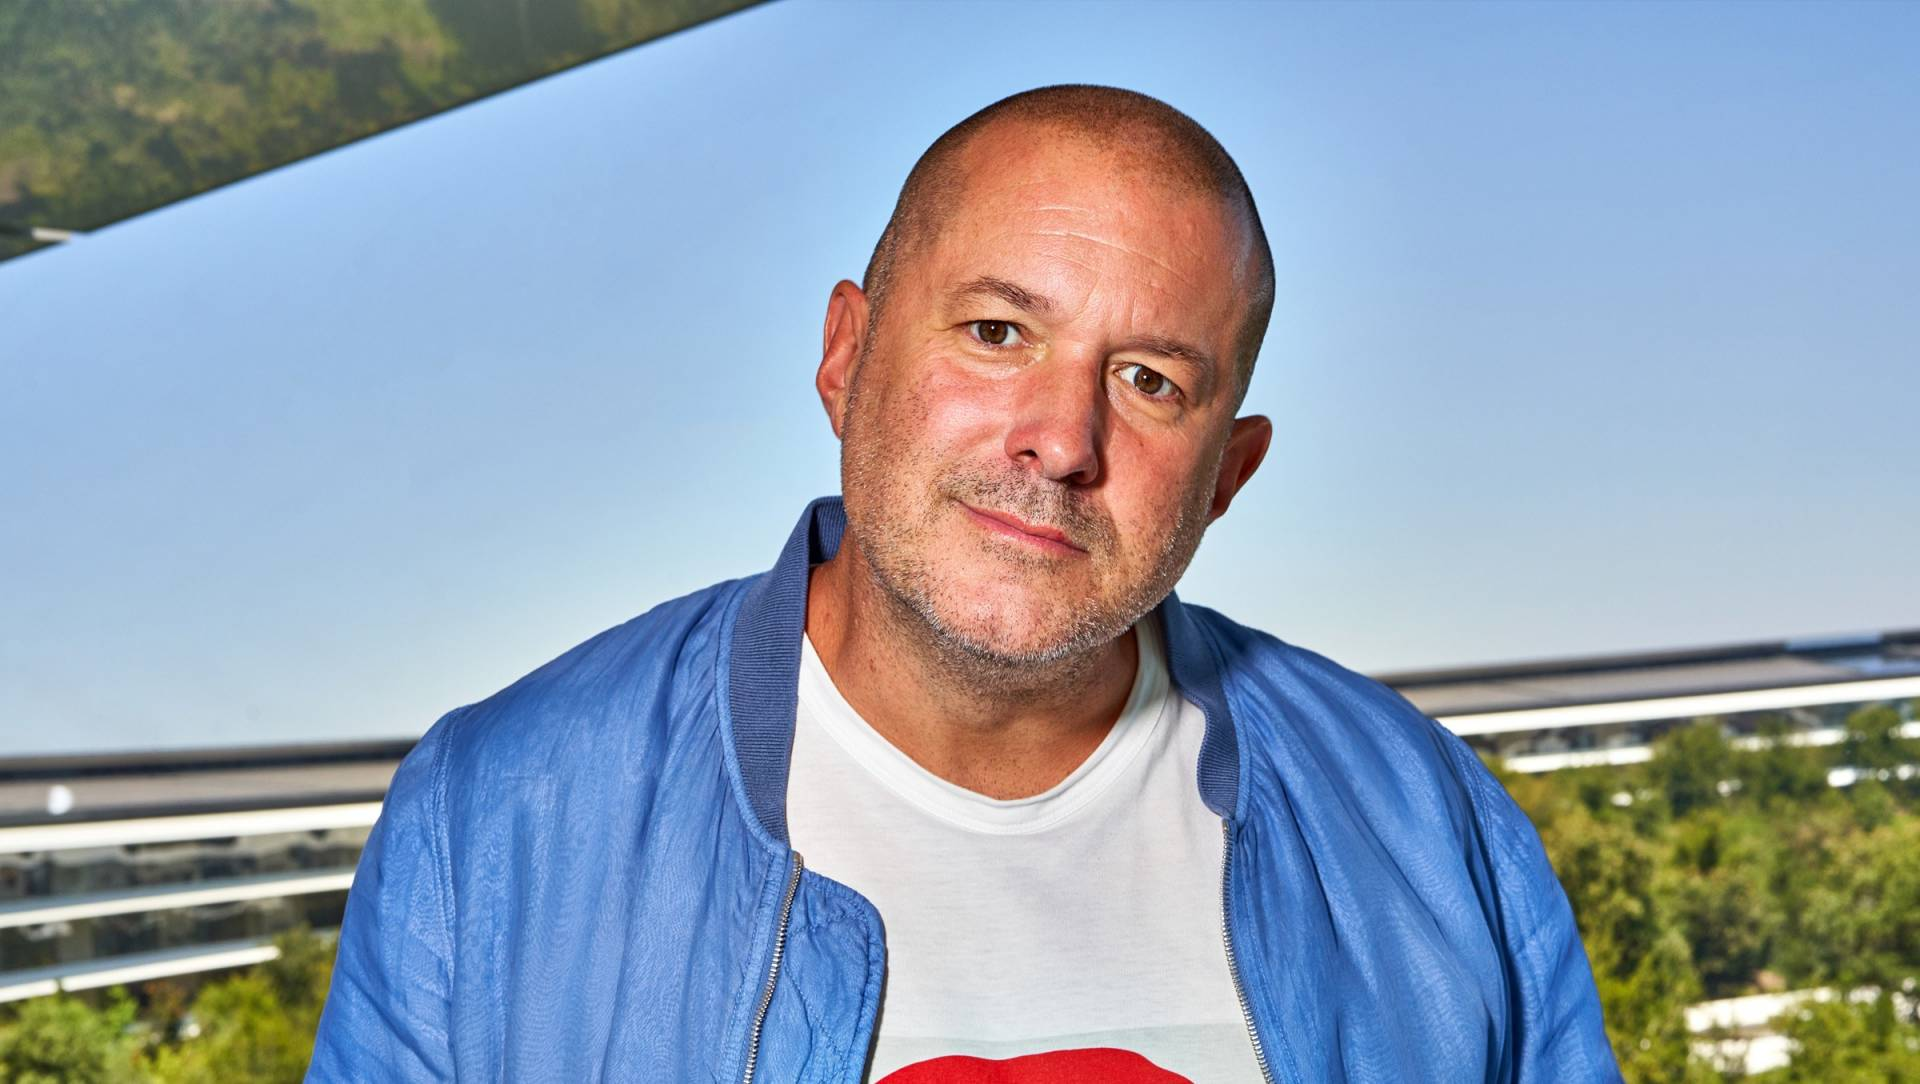 jony ive parasit apple